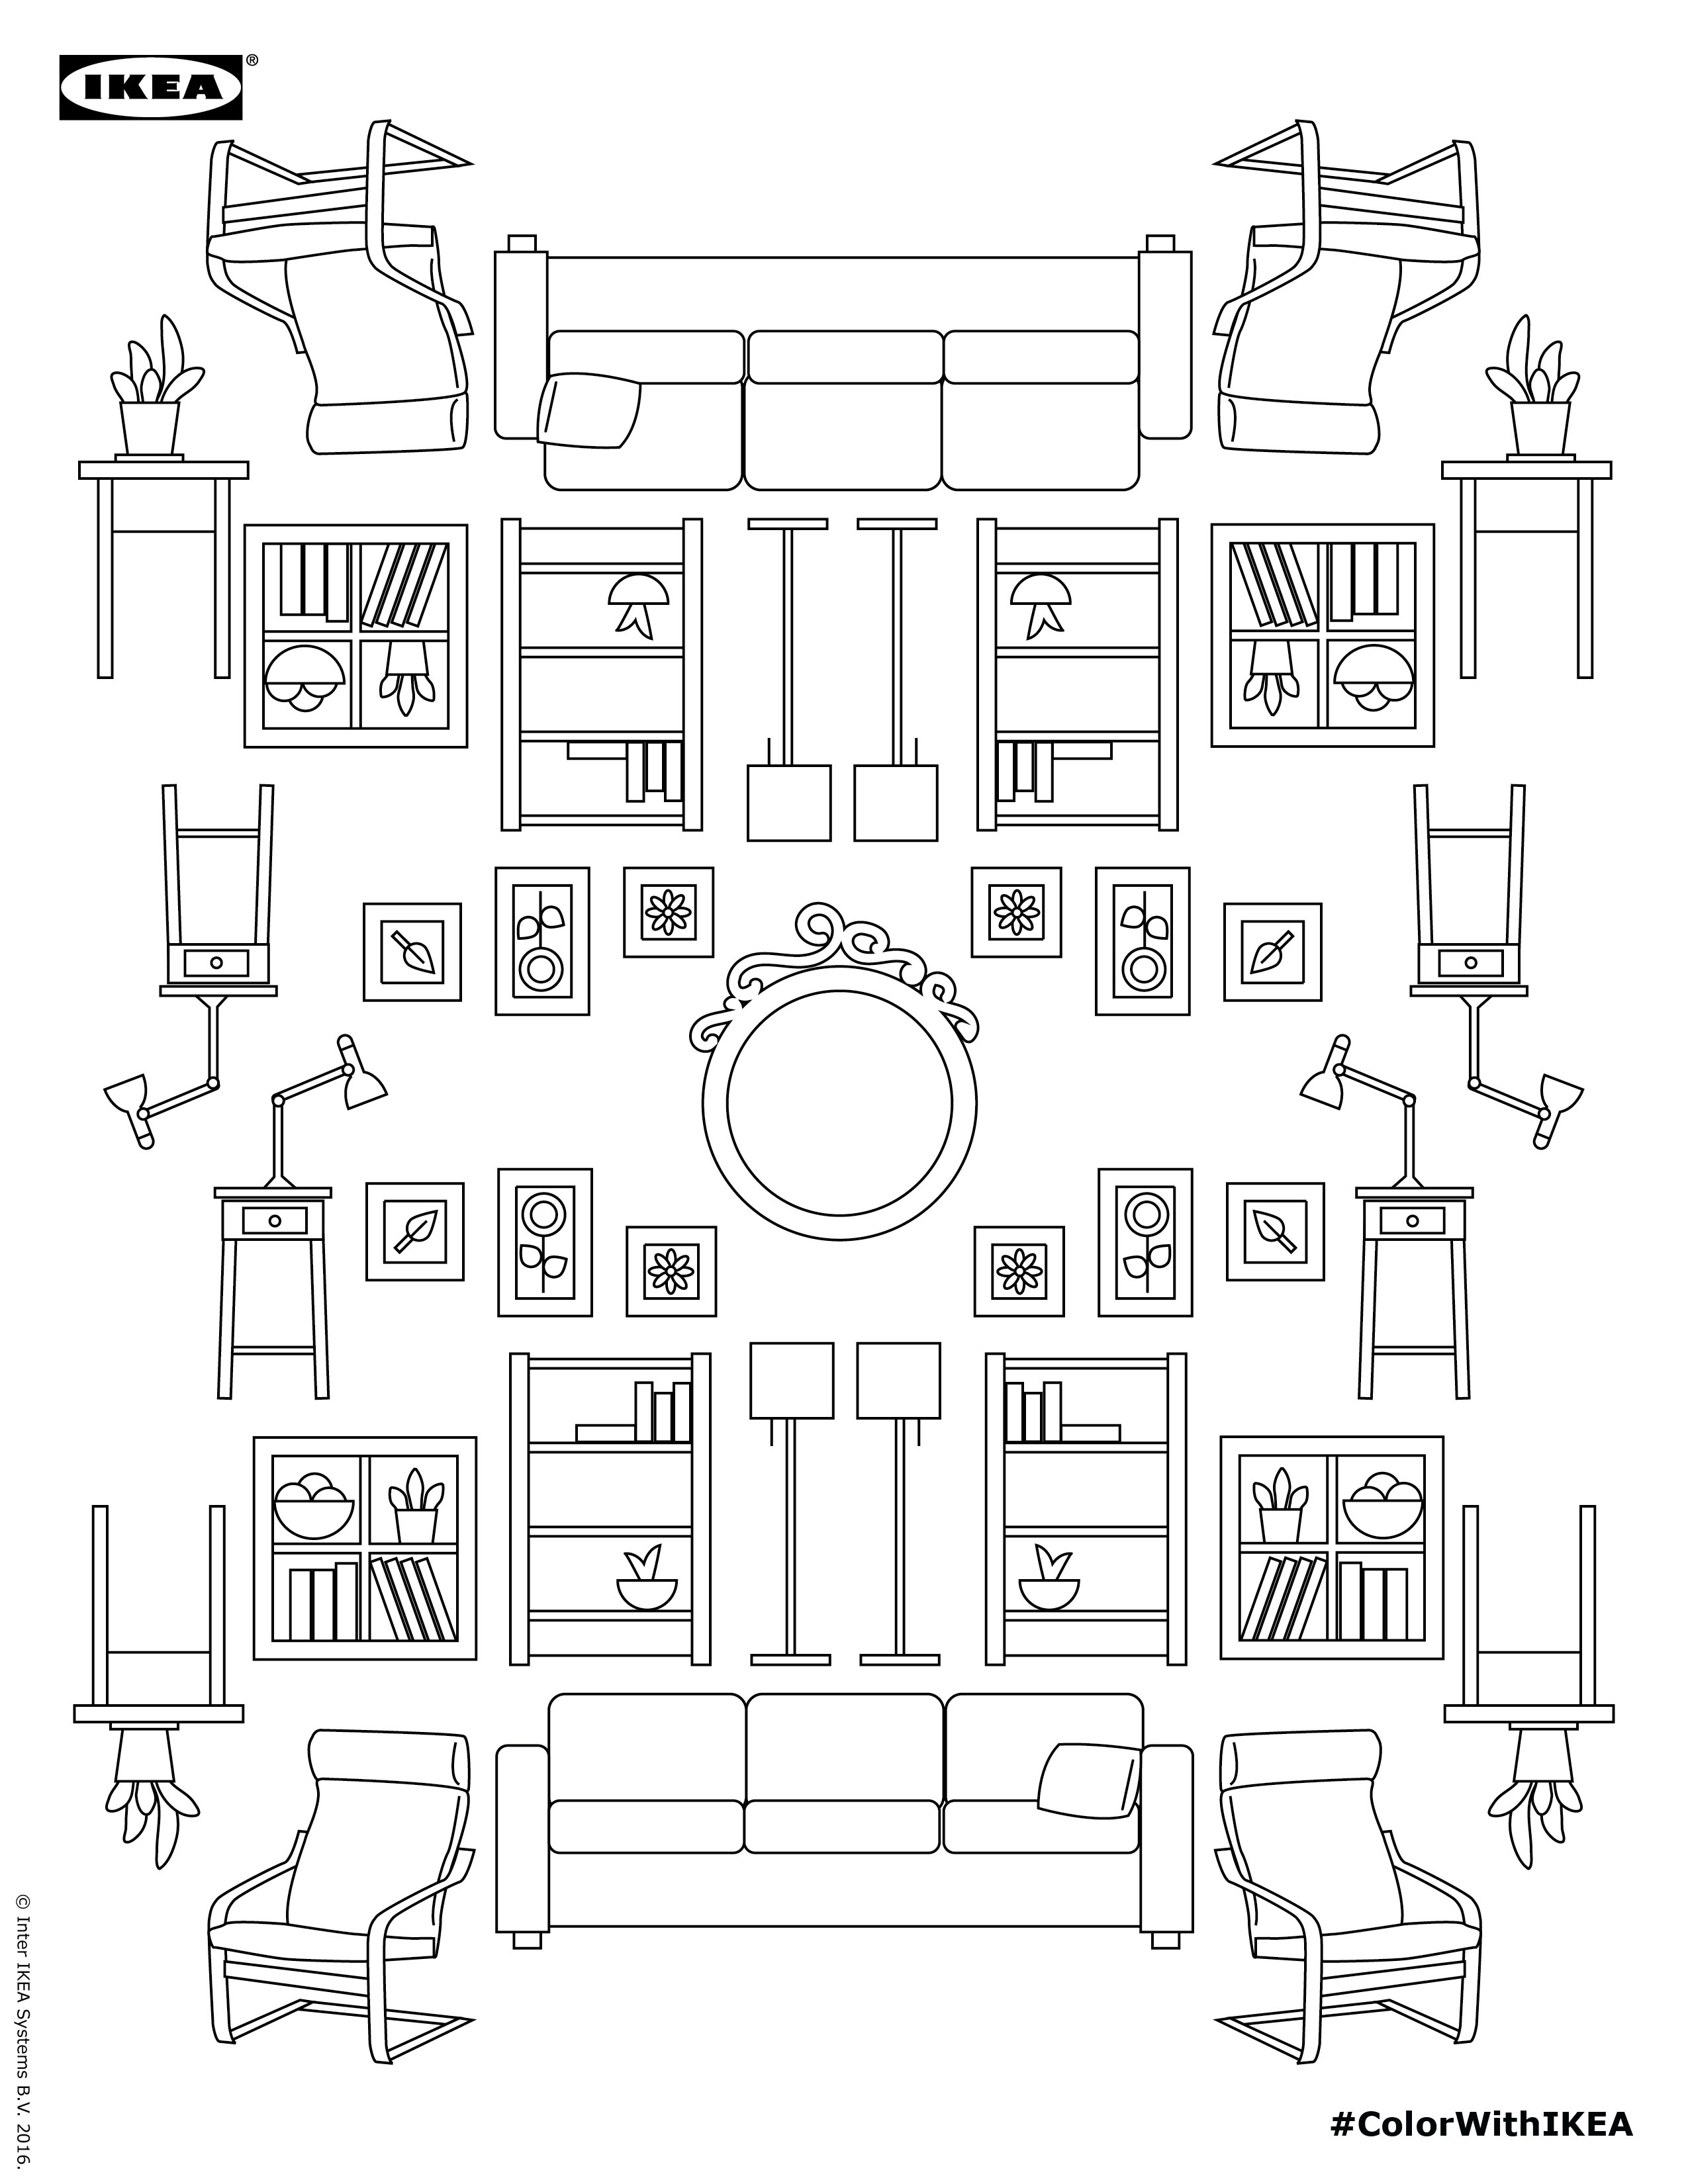 Coloring pages furniture - Ikea Coloring Book